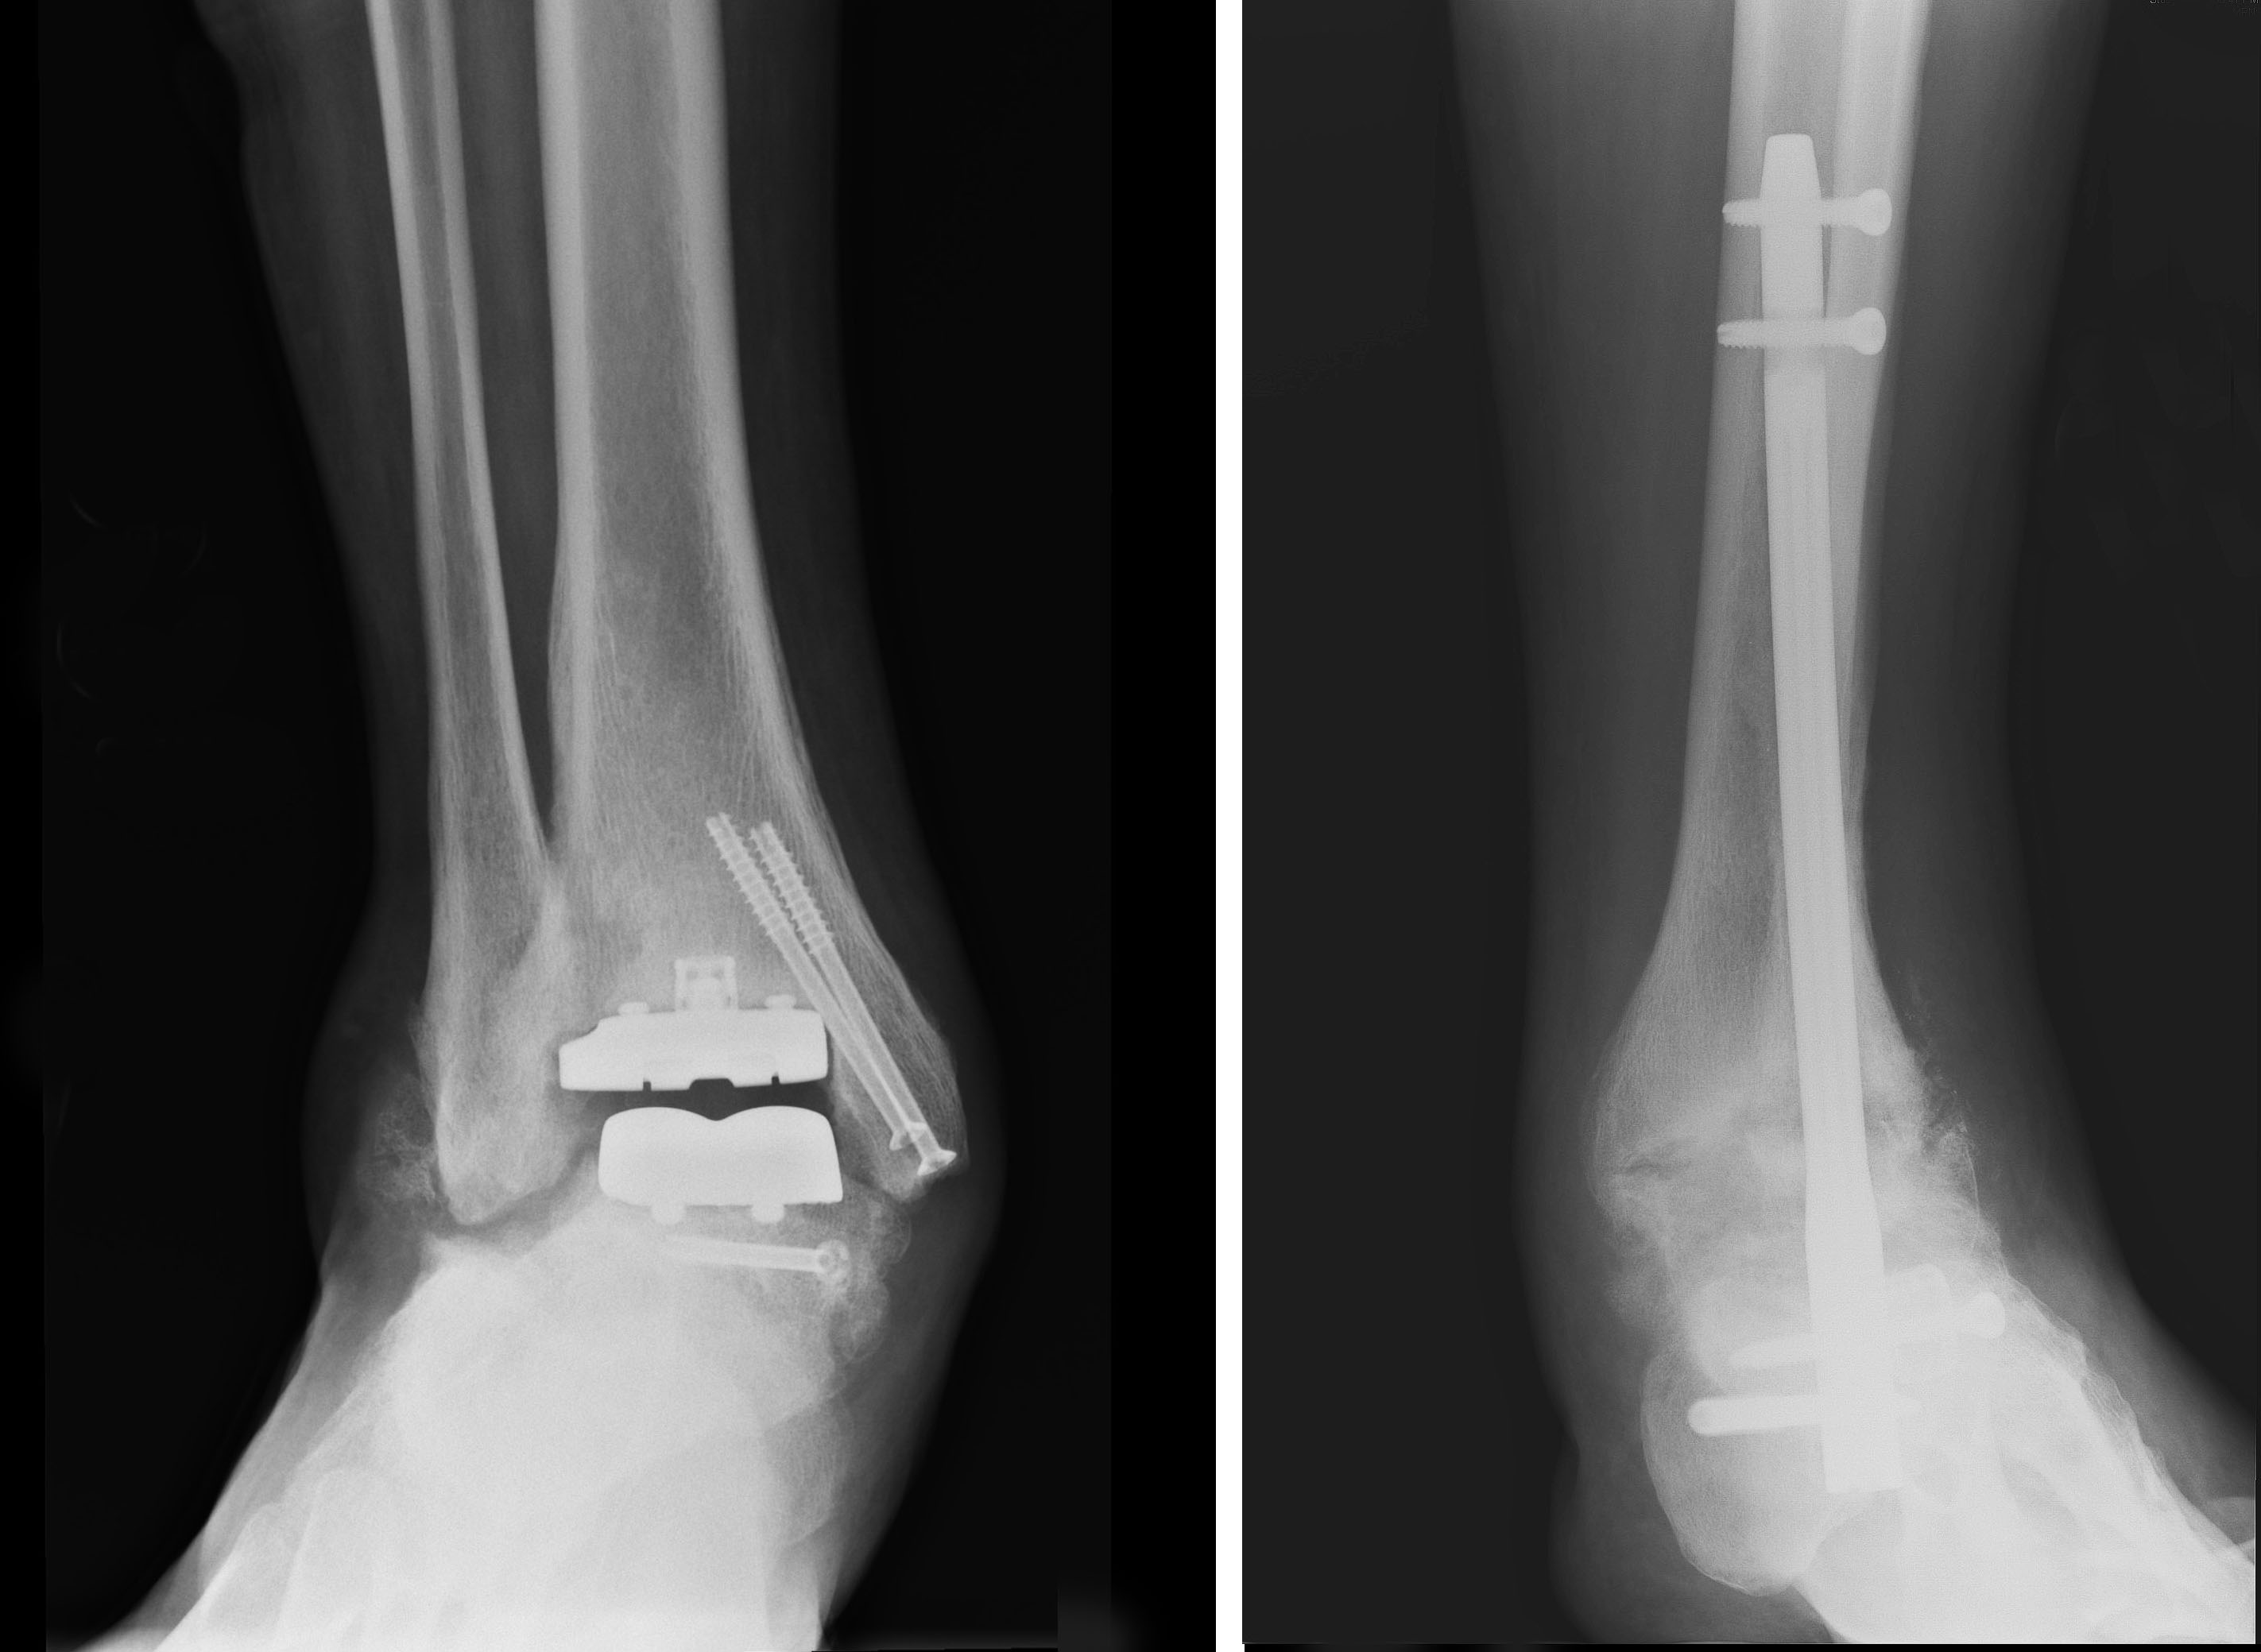 Postoperative right and left ankles